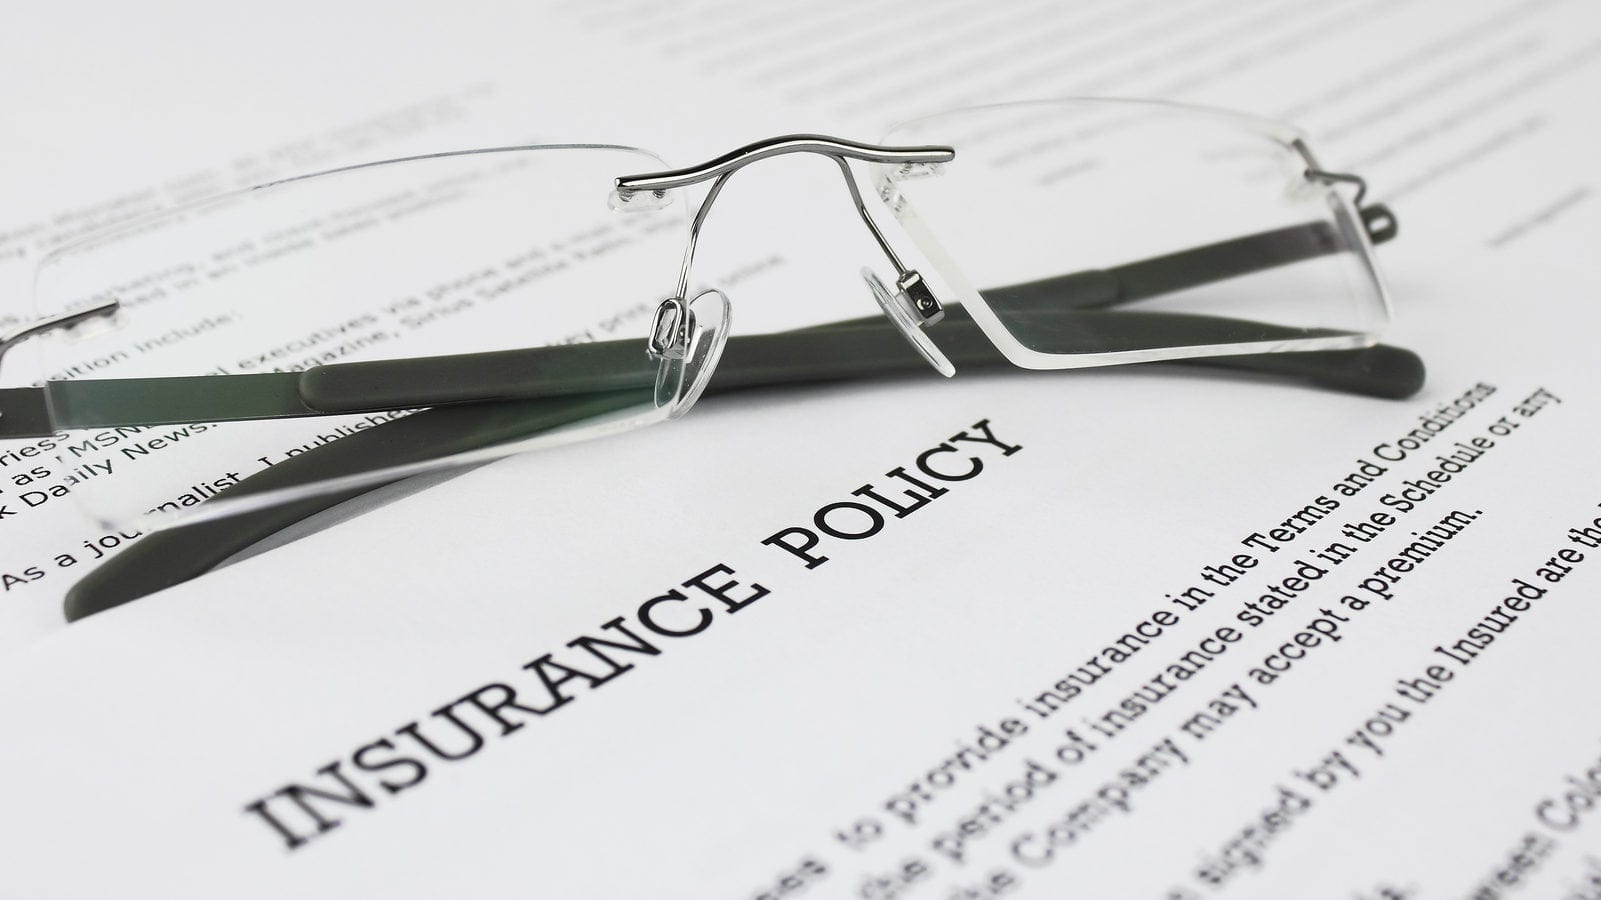 Insurance Policy Document Stock Photo